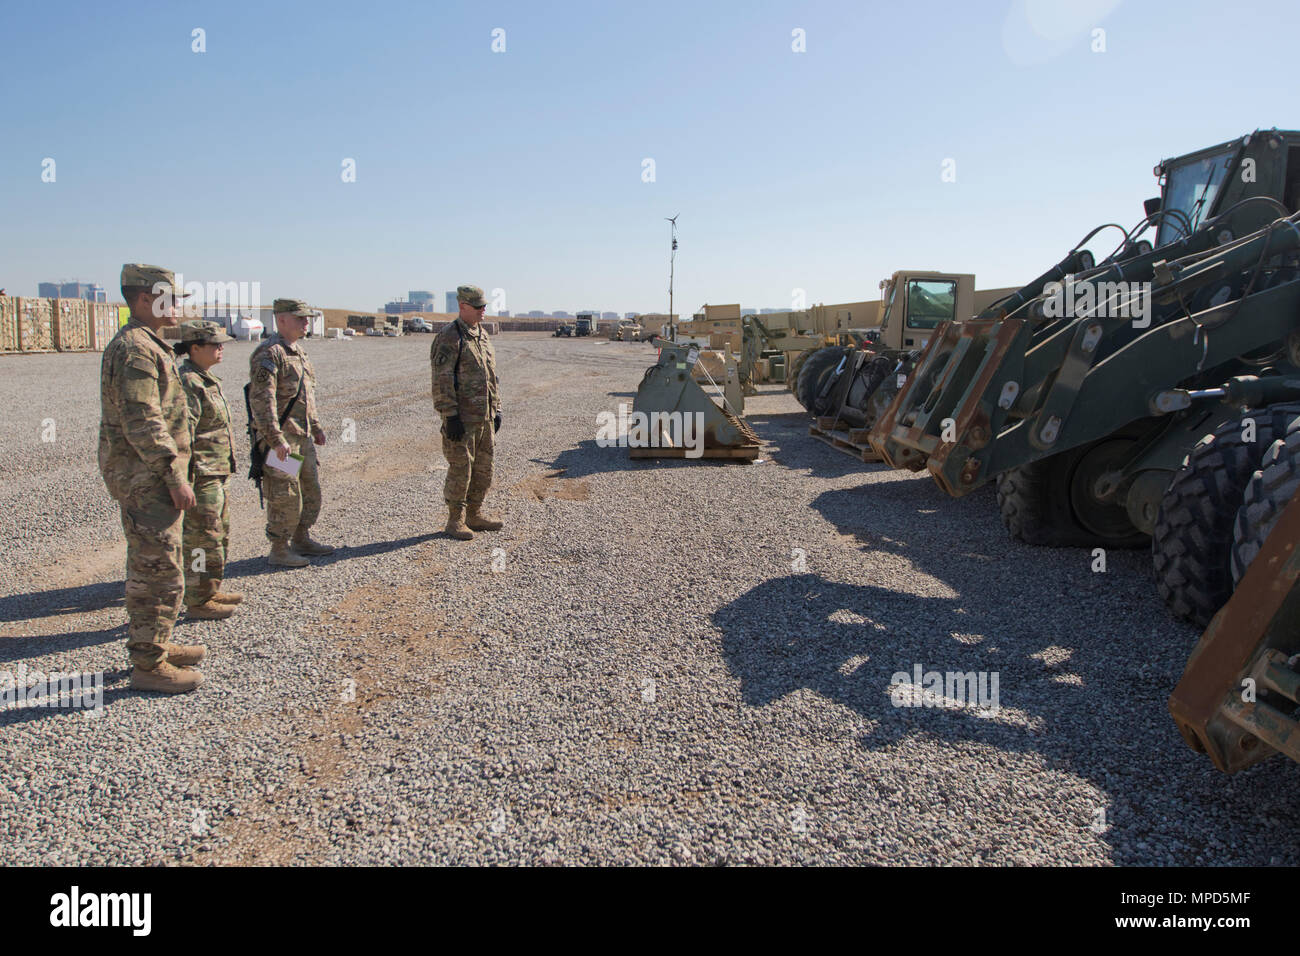 Brig. Gen. Robert D. Harter, deputy commanding general of the 1st Sustainment Command (Theater) / commanding general of the 316th Sustainment Command (Expeditionary), inspects the Movement Control Team's staging yard at Erbil, Iraq, on February 3, 2017. (U.S. Army photo by Staff Sgt. Dalton Smith) - Stock Image